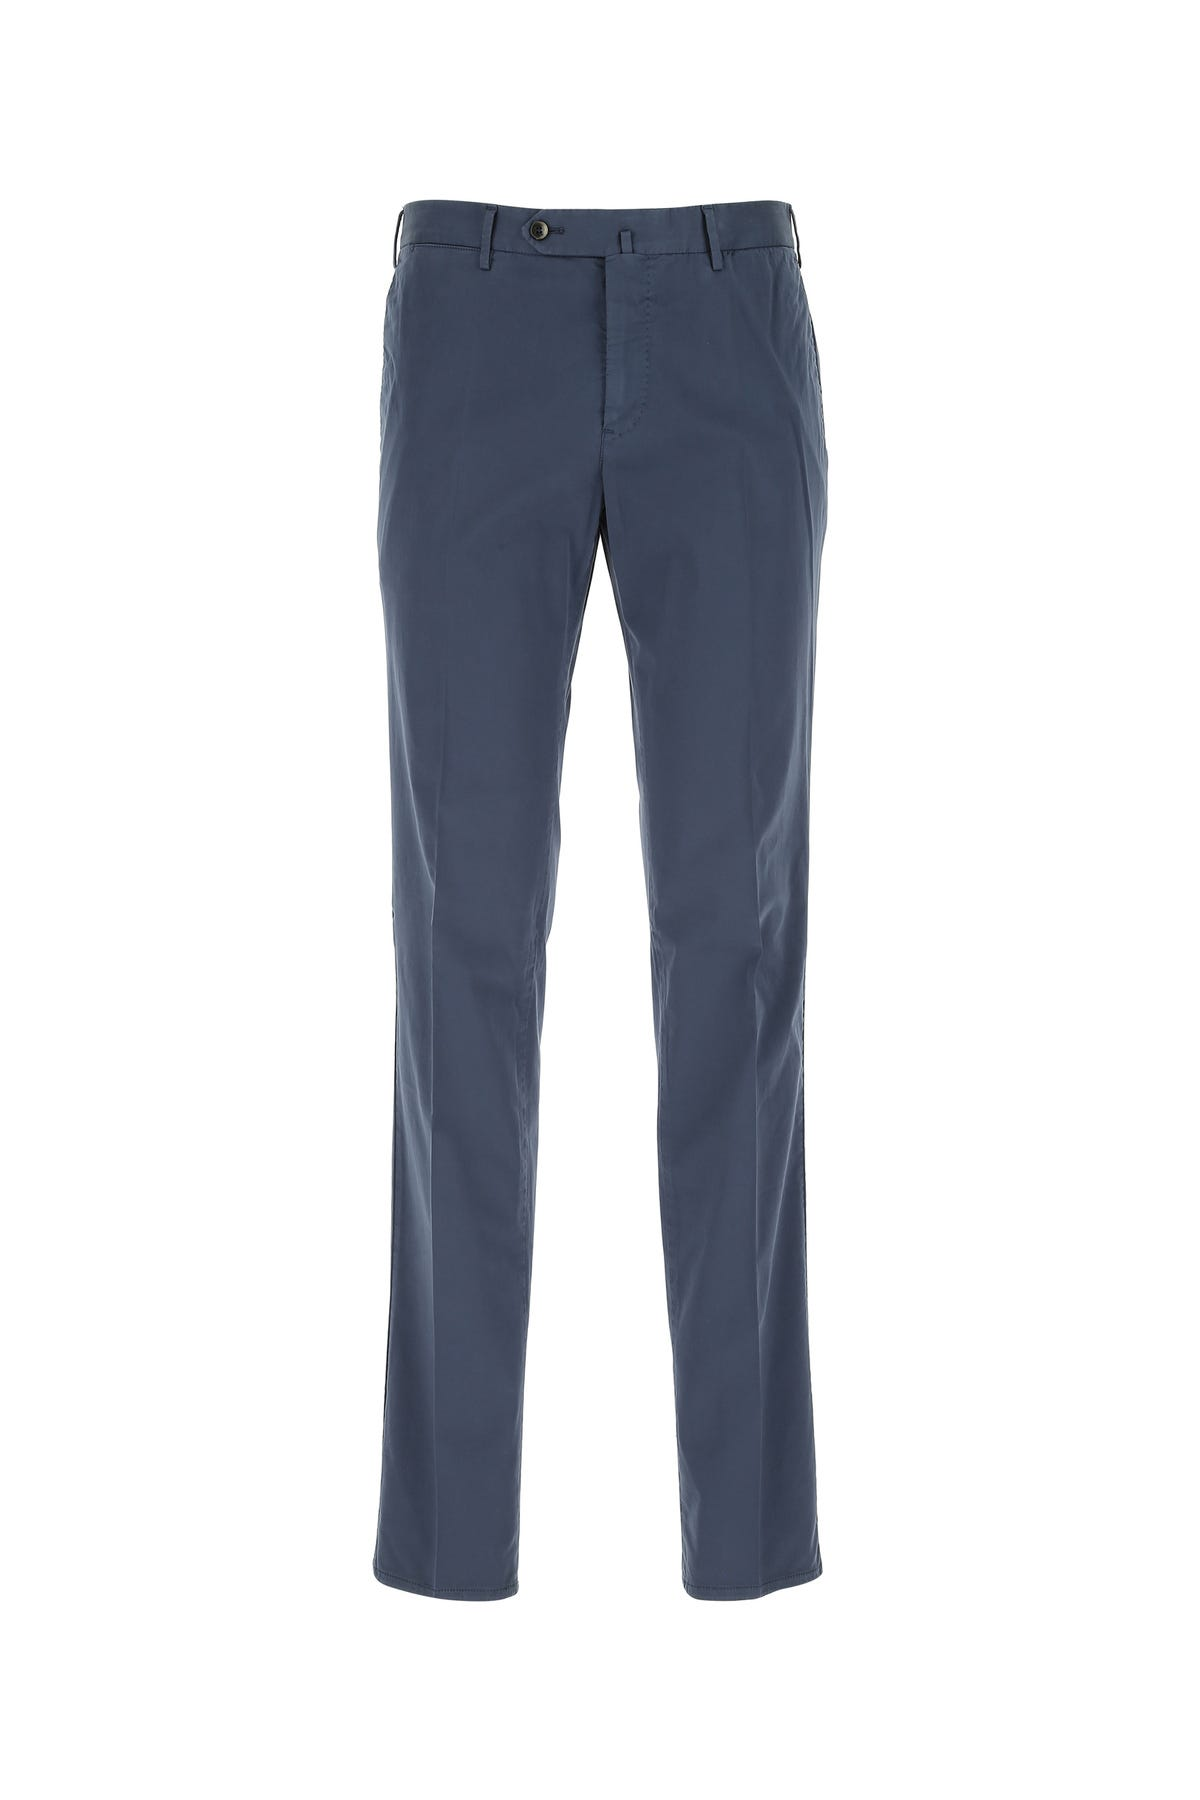 Pt01 Backup Blue Stretch Cotton Chino Pant  Nd Pt01 Uomo 52